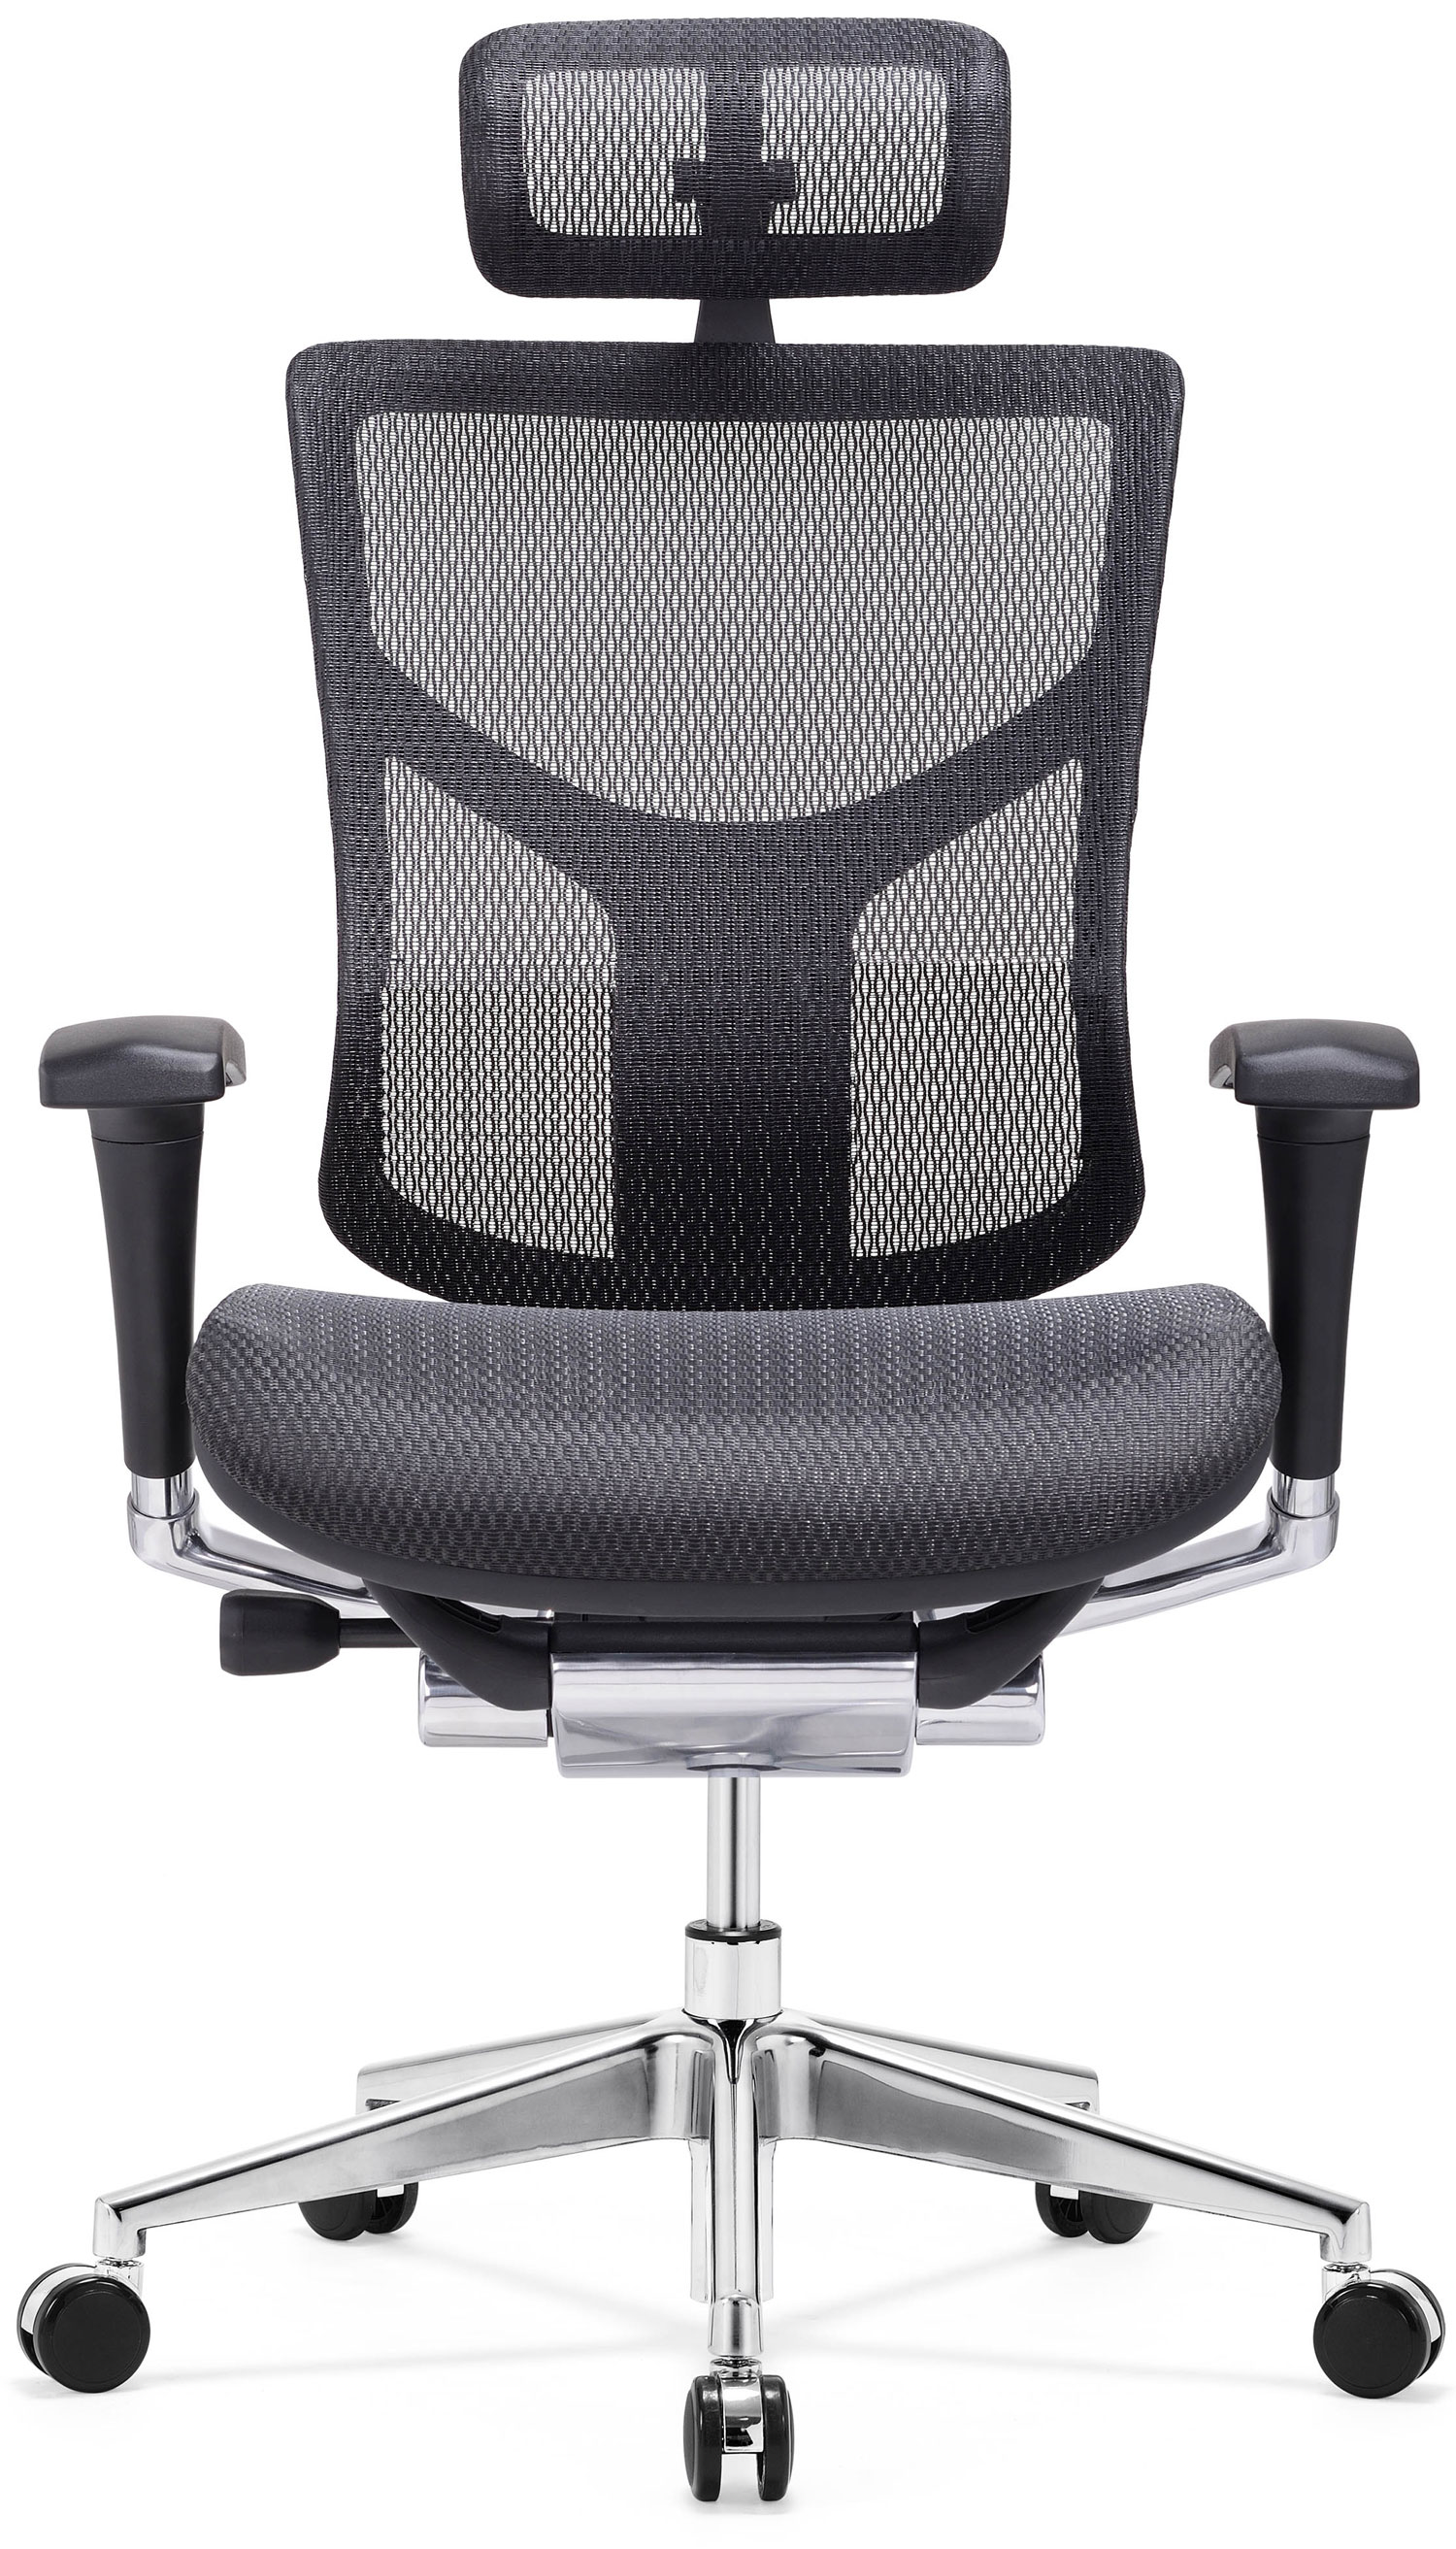 GM Seating Dreem XL Luxury Mesh Series Executive Hi Swivel Chair Chrome Base with Headrest, Black, Seat Slider